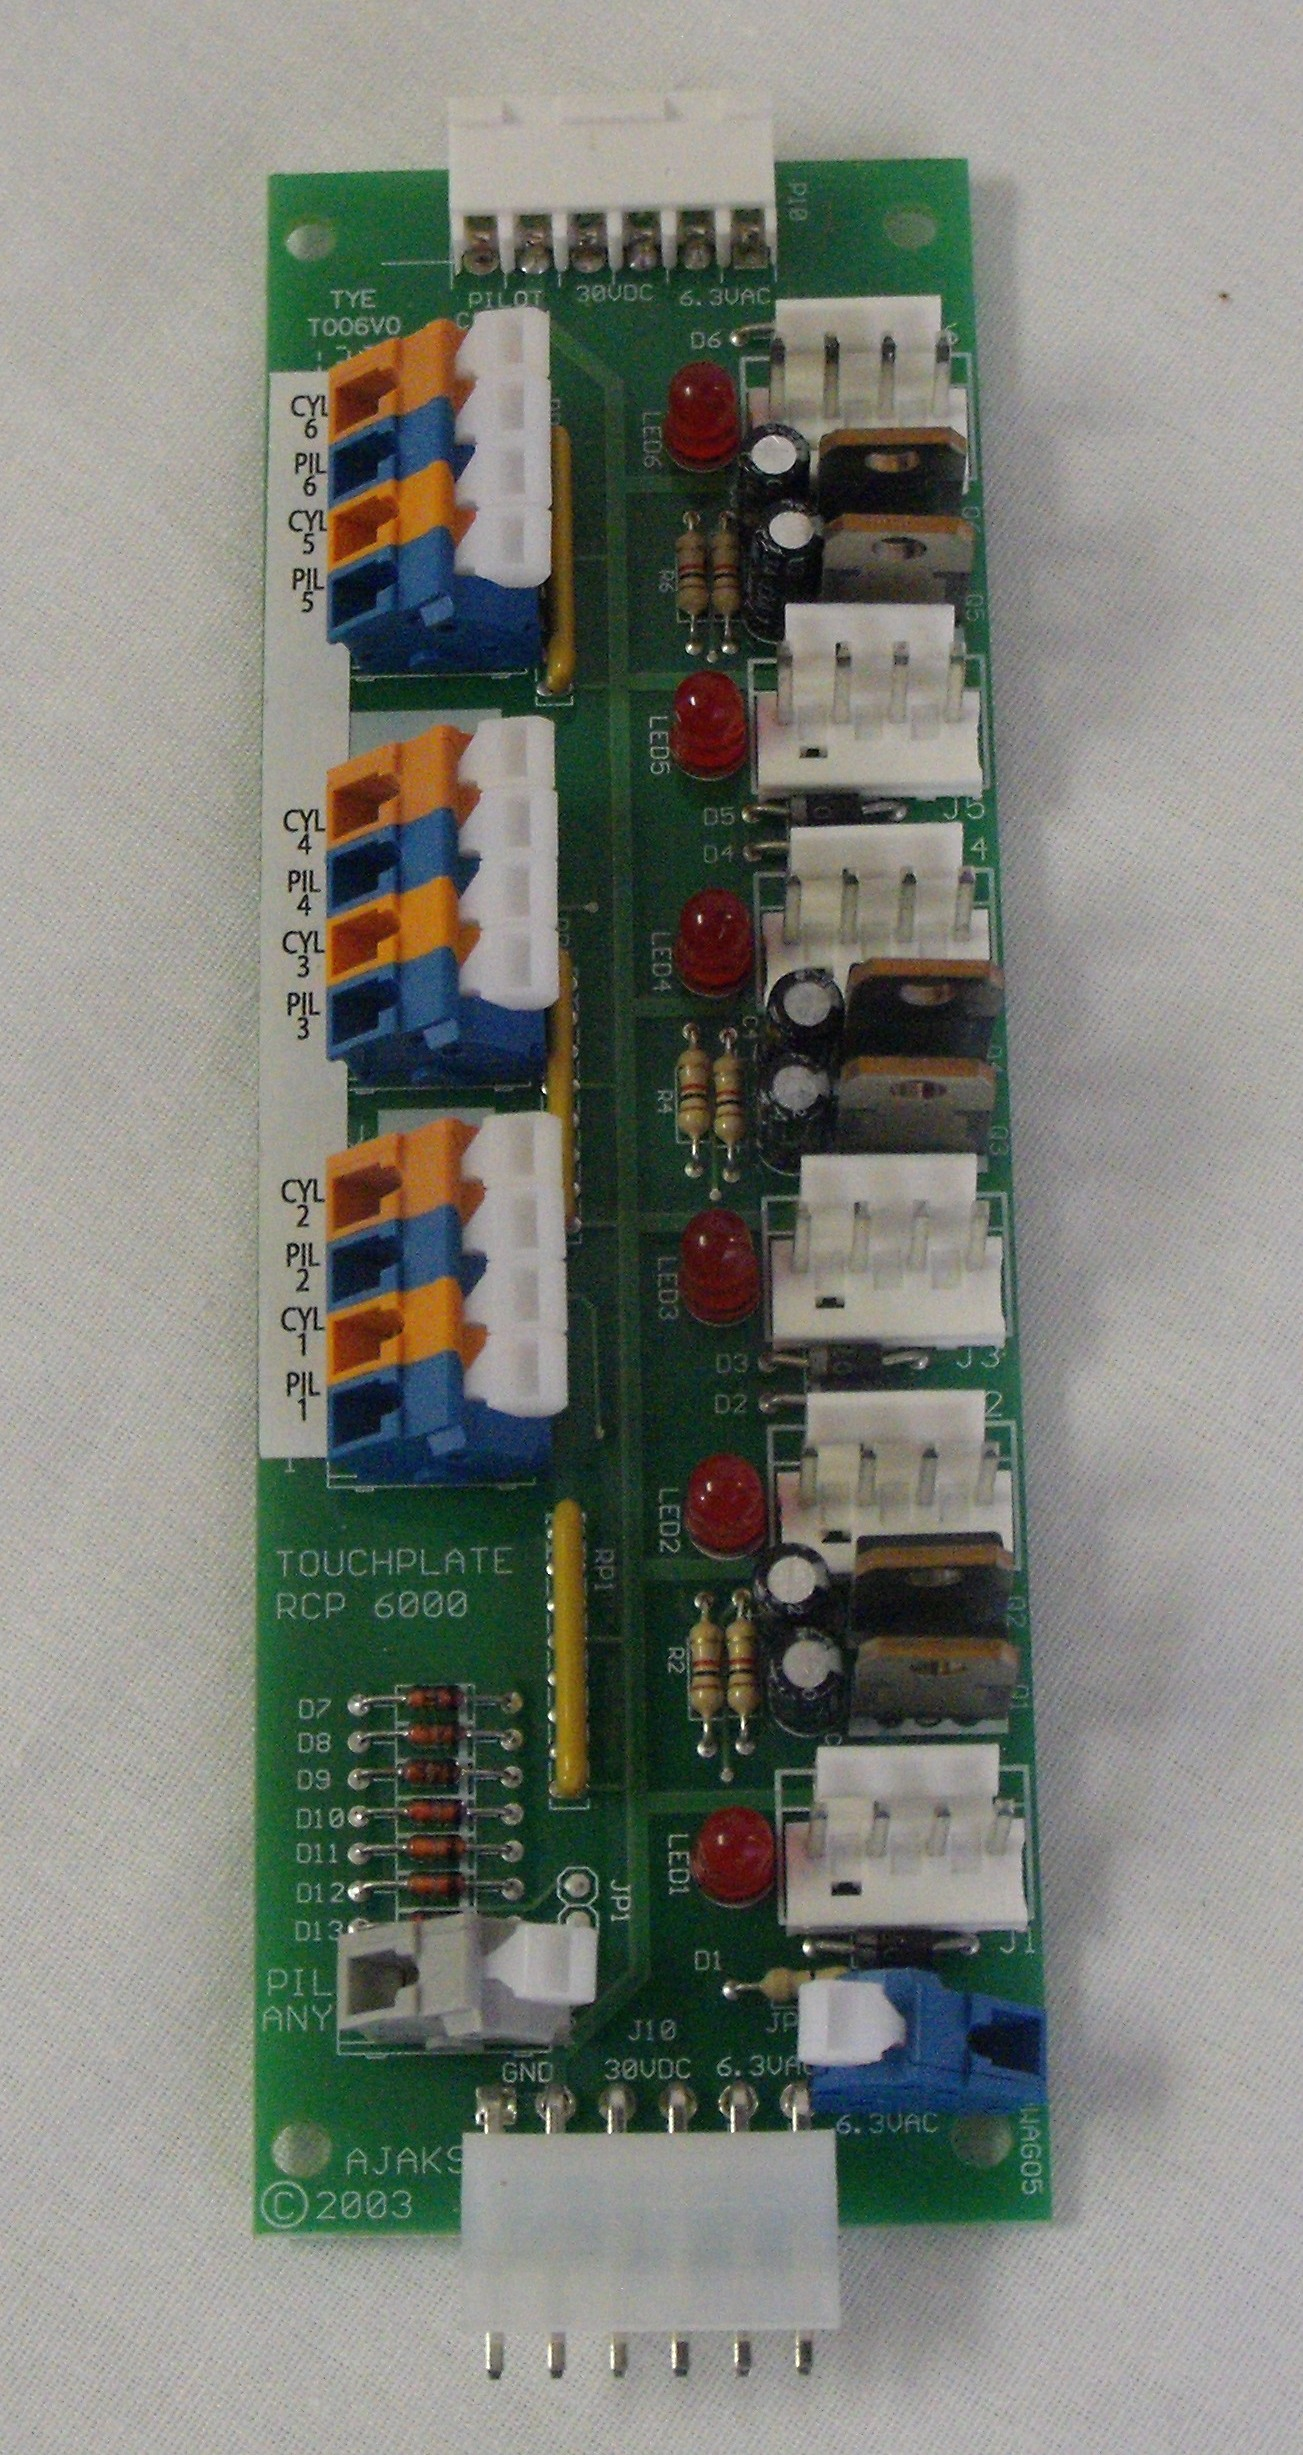 Touch Plate Relay Wiring Diagram 32 Images Index 238 Control Circuit Seekiccom Dscf8157 Boards Archives Lighting Controls At Highcare